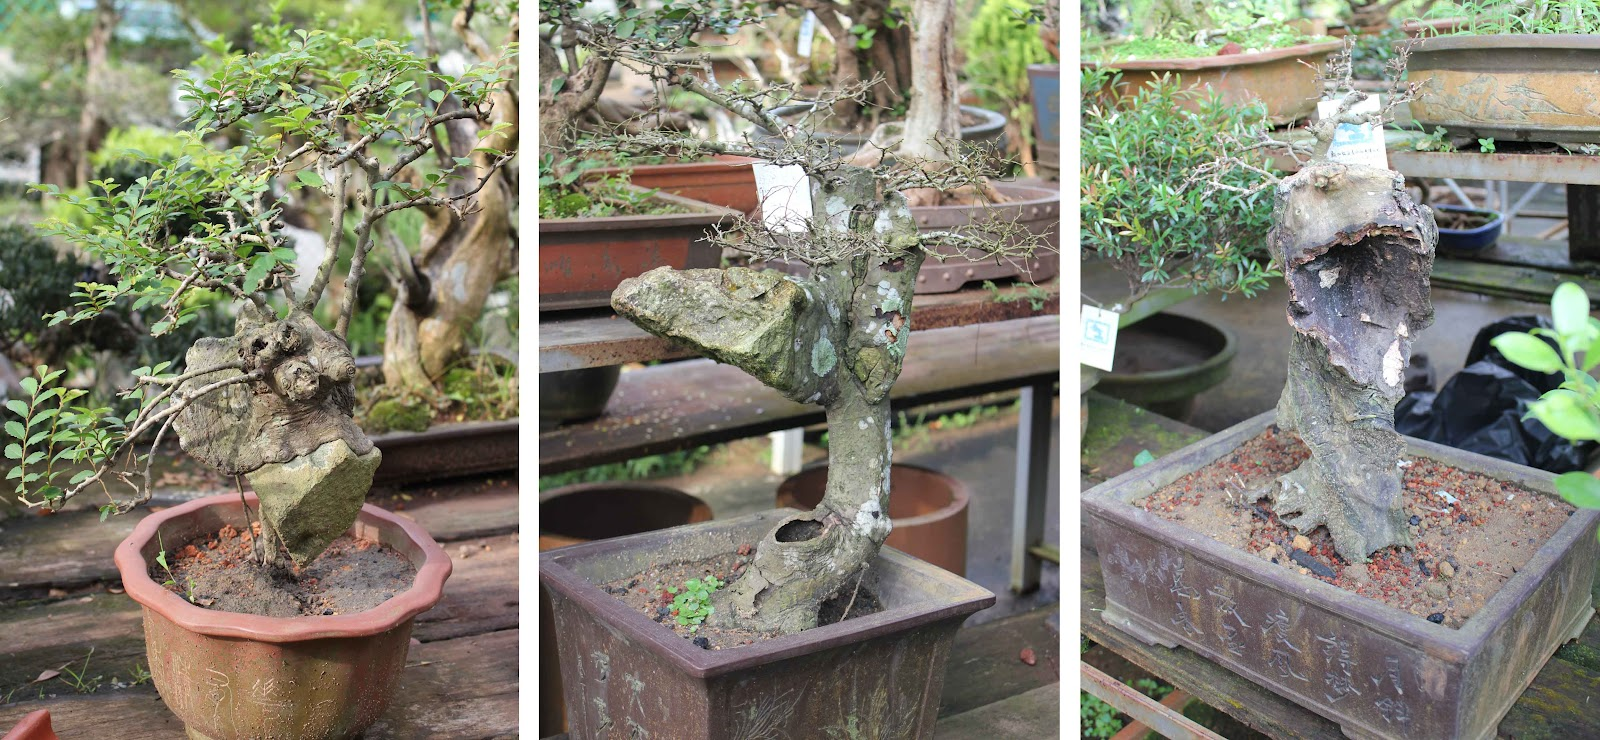 Kigawa39s Bonsai Blog Bonsai Gallery Singapore